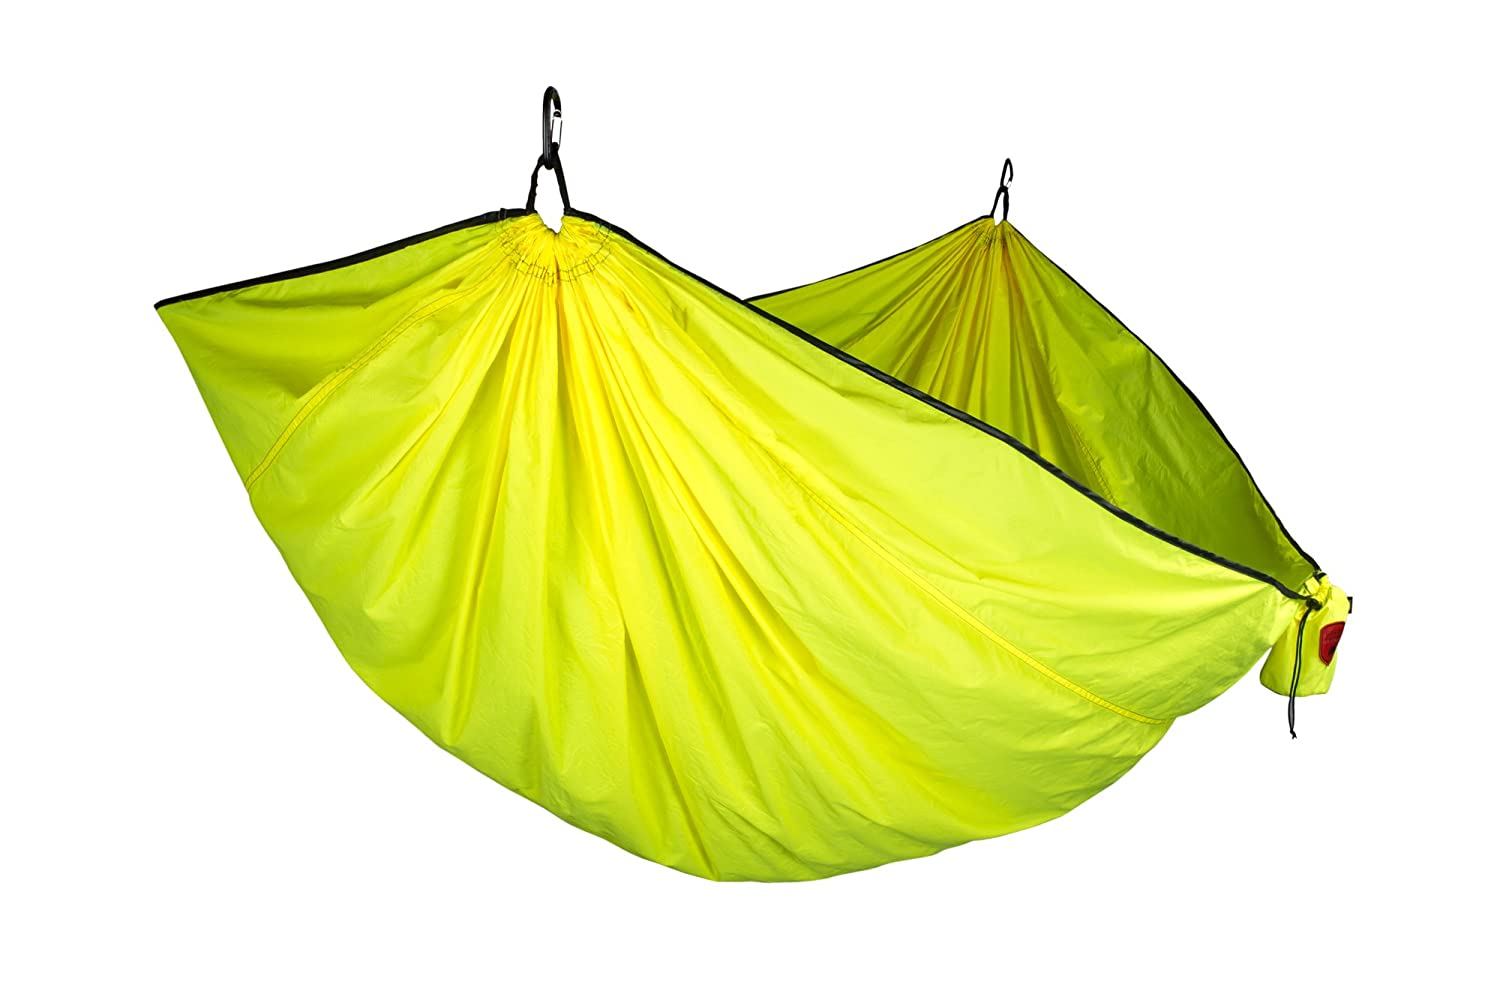 Travel Lightweight Portable Pongee Parachute Hammock with Straps and Carabiners for Camping Backpacking TRIWONDER Single /& Double Camping Hammock Outdoors